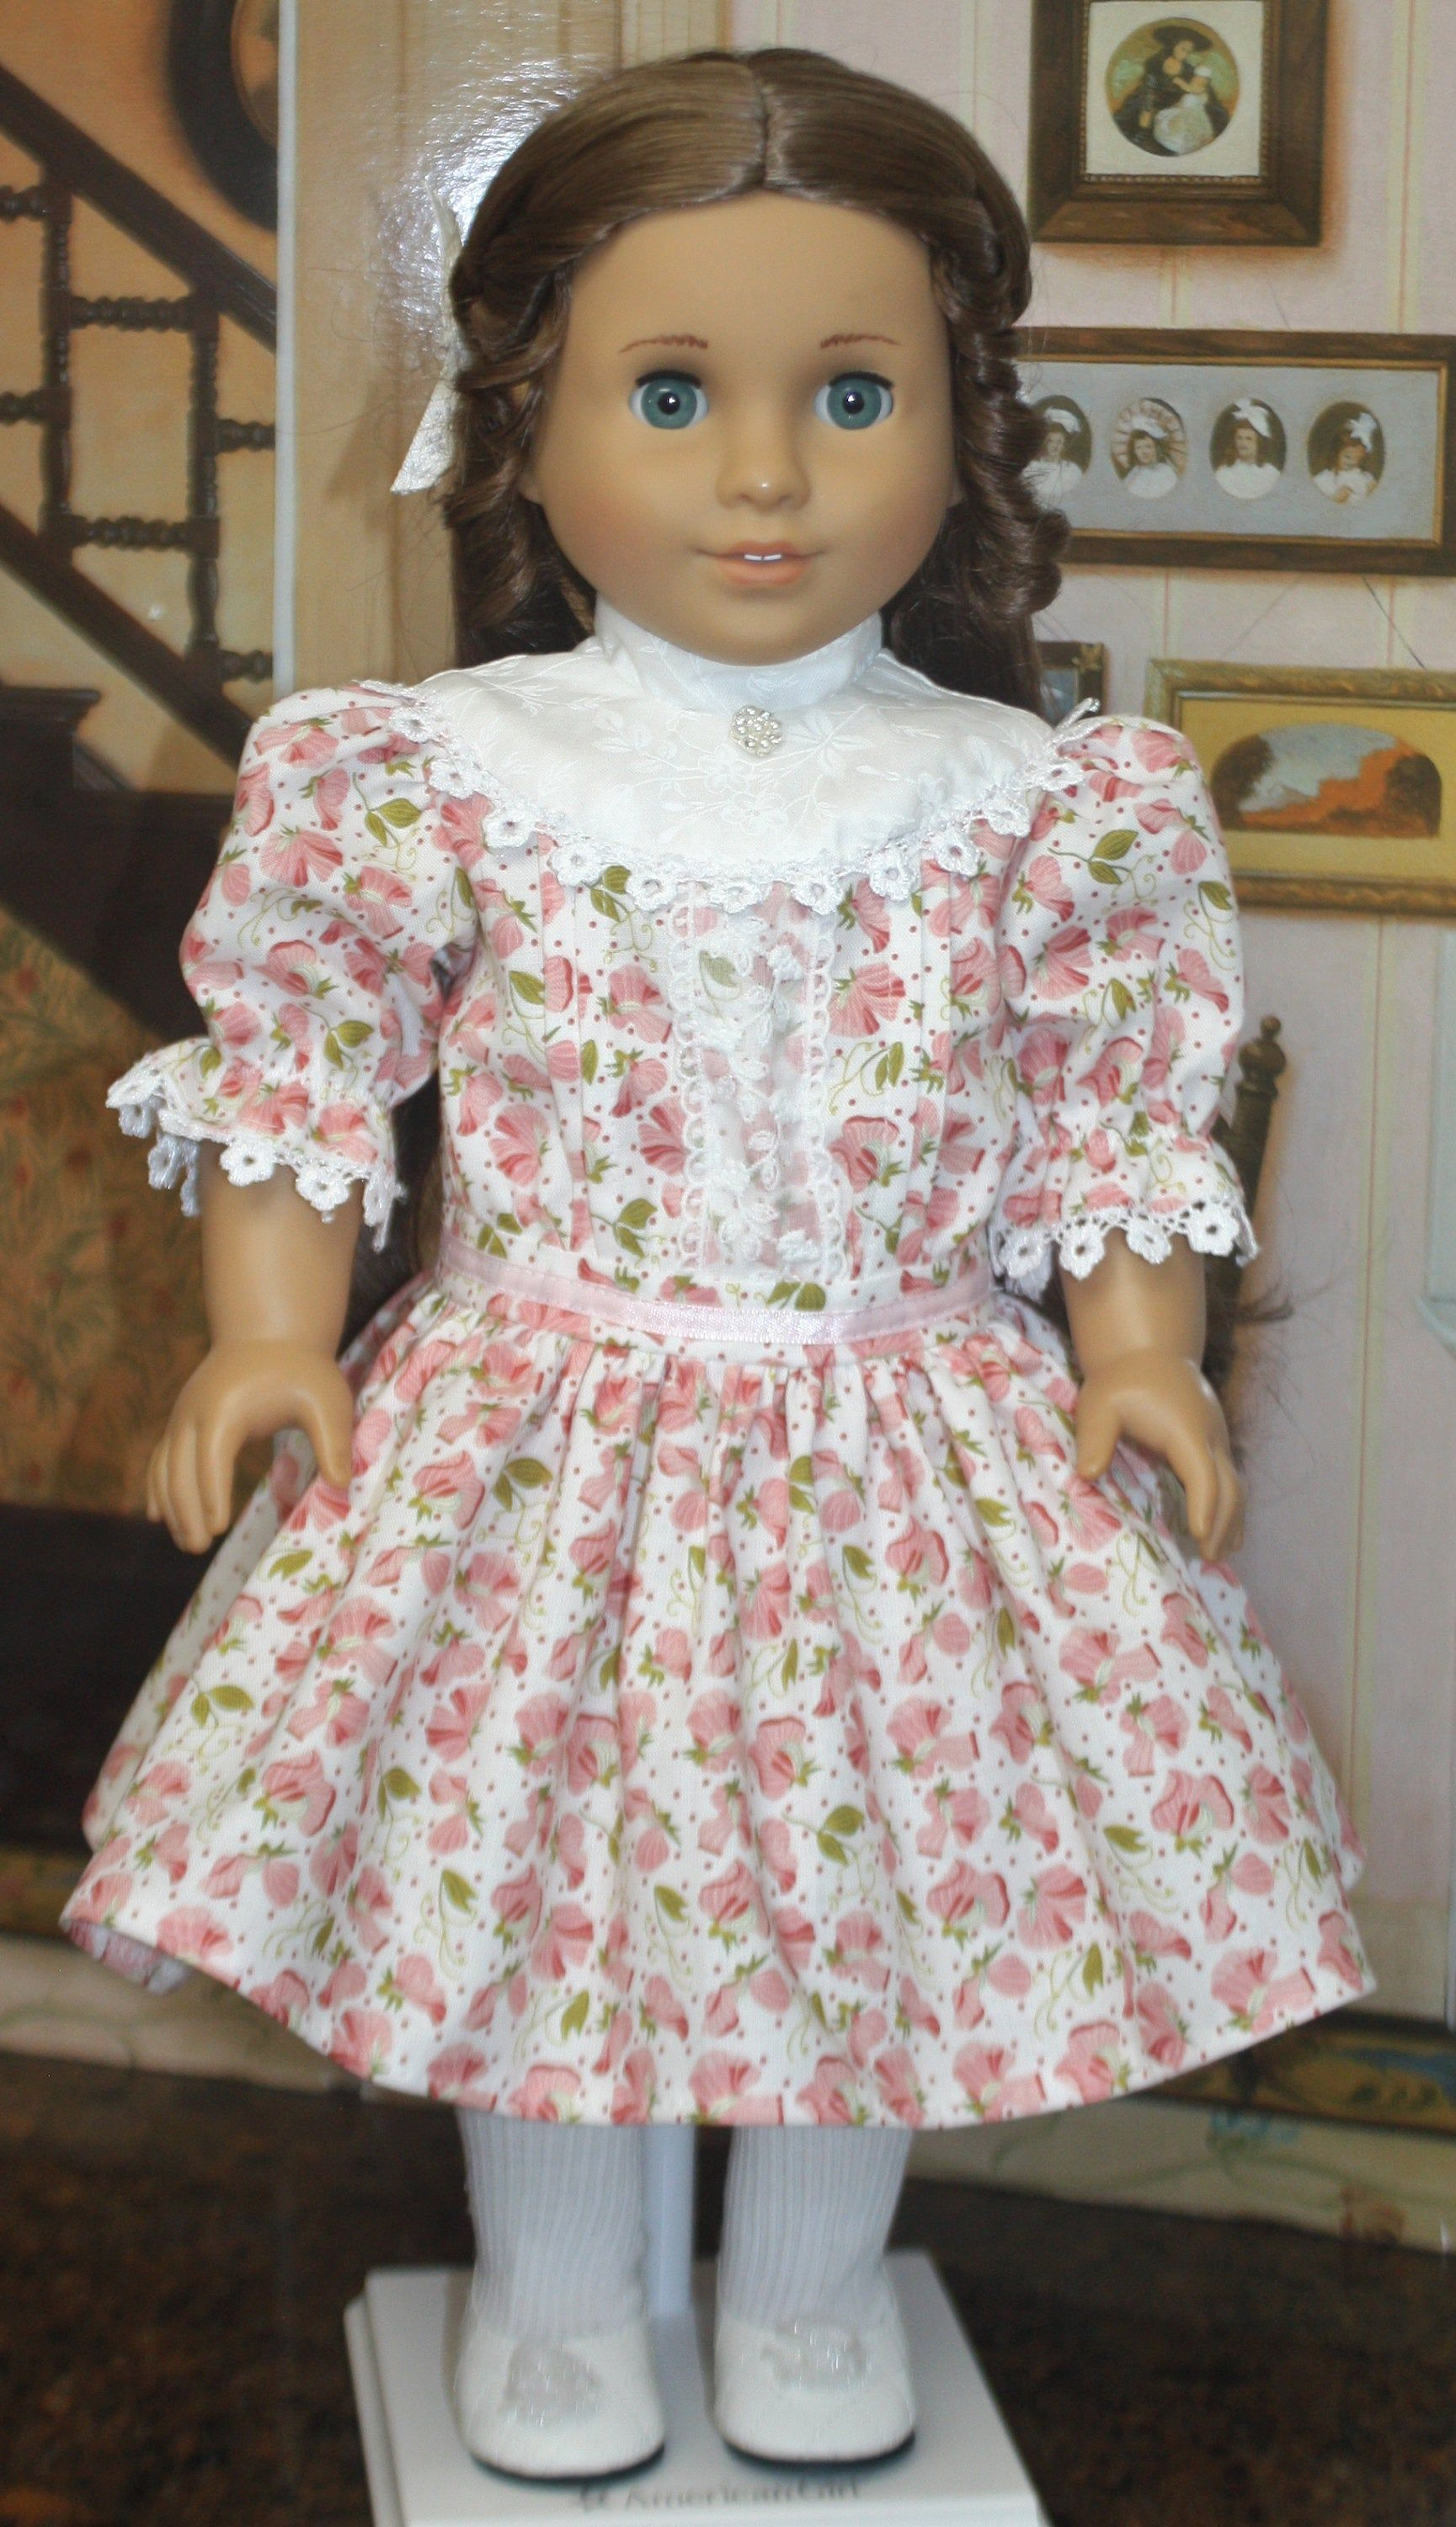 American Girl Style Edwardian Tuck Dress in Pink Floral #americangirlhouse